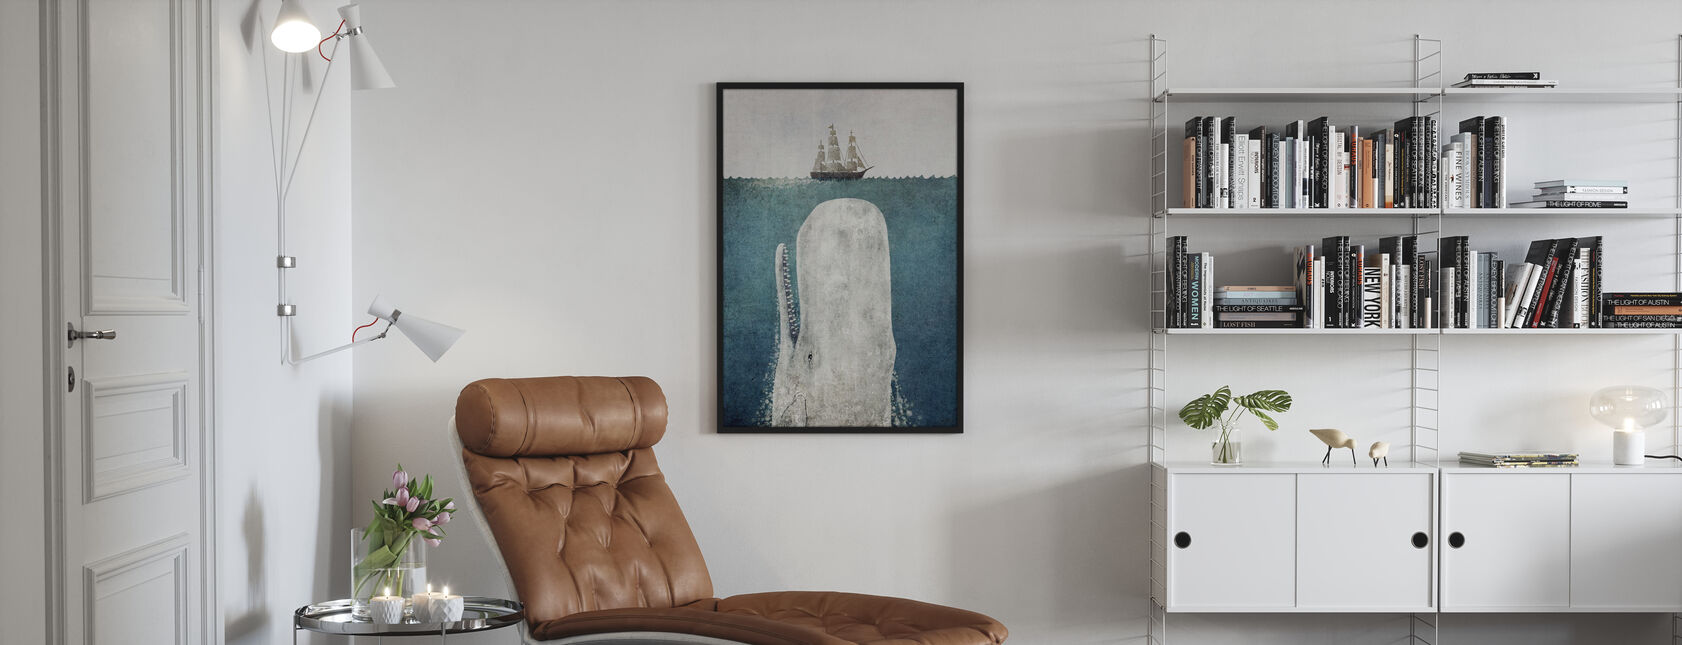 Whale Vintage - Framed print - Living Room